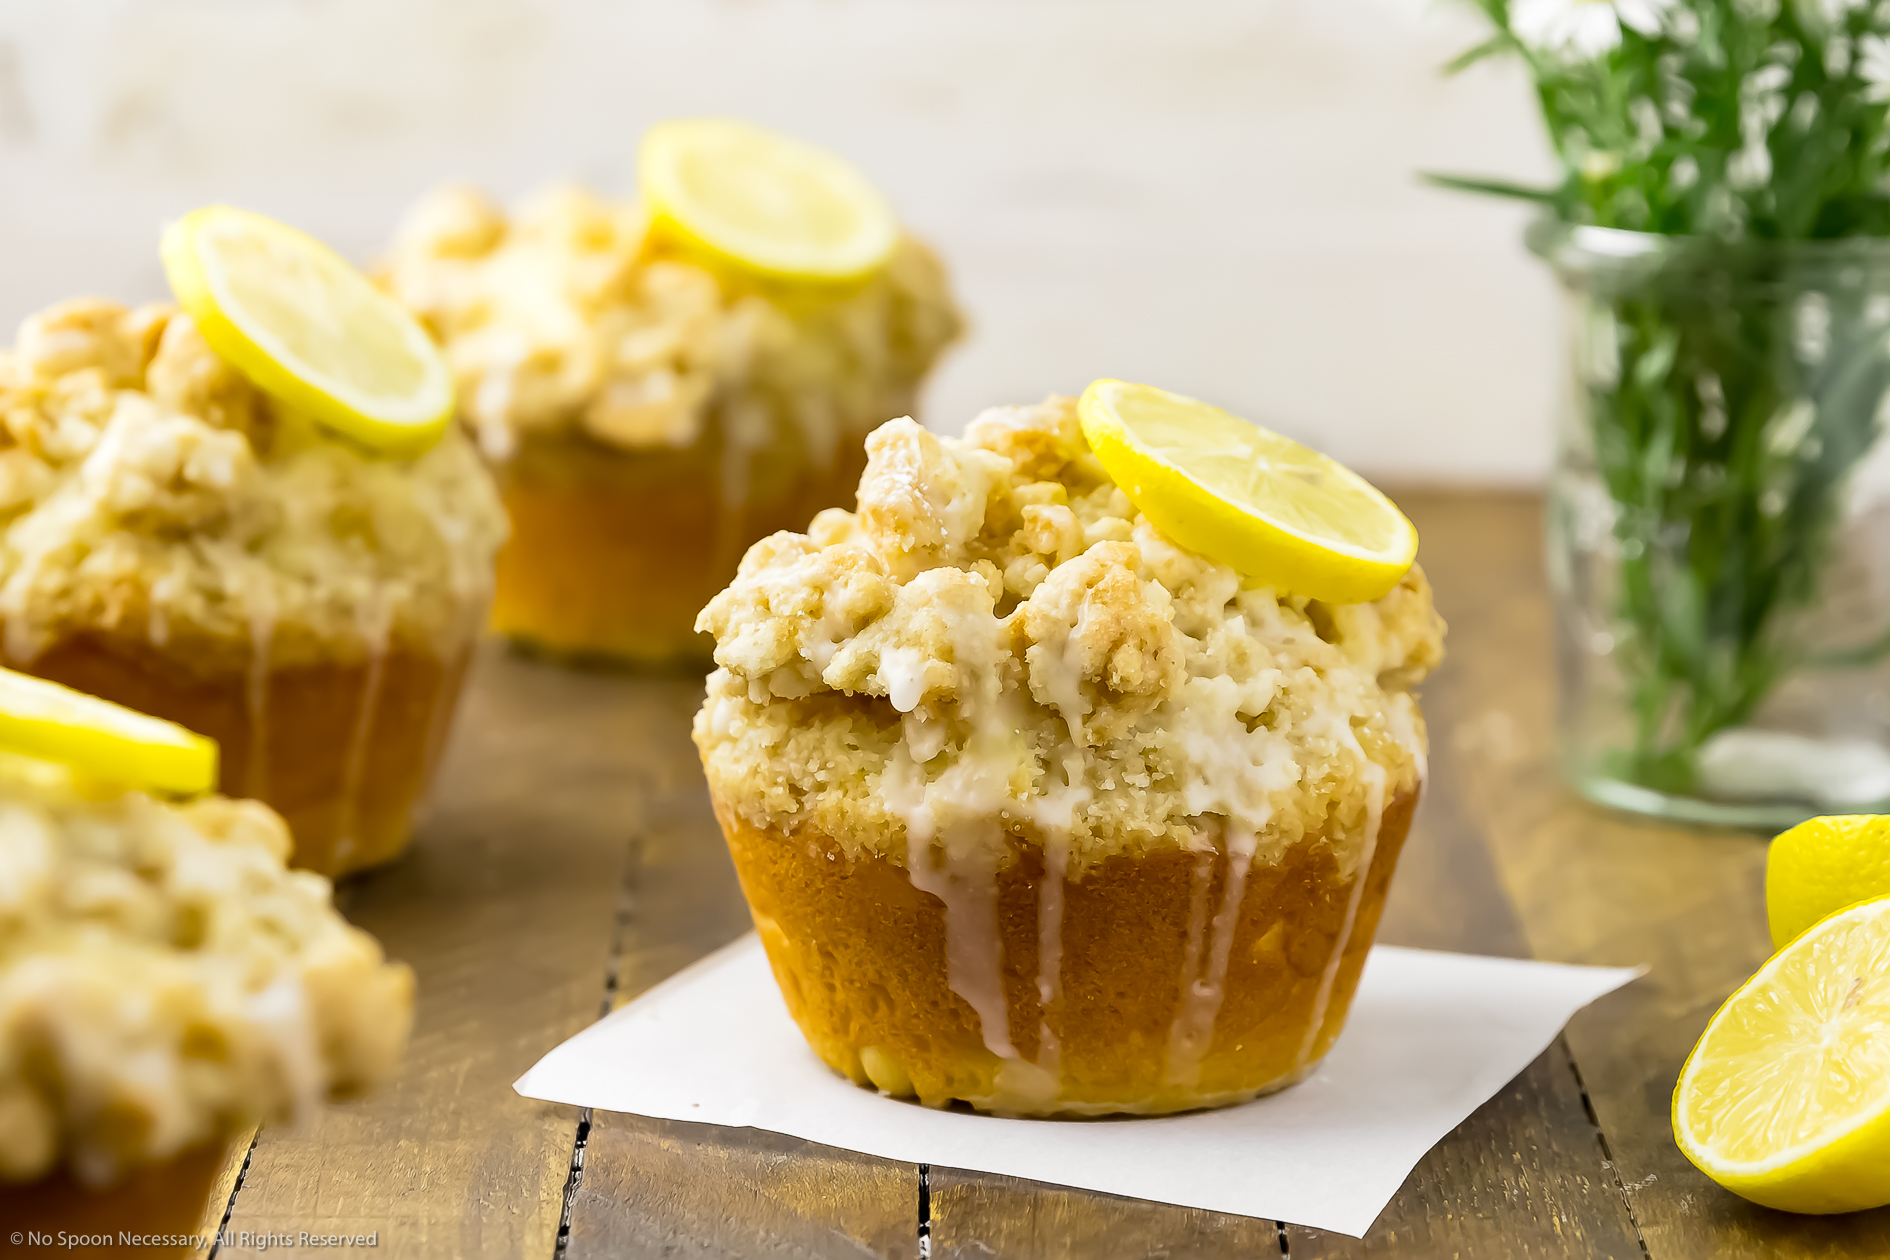 Glazed Lemon Muffins Recipe